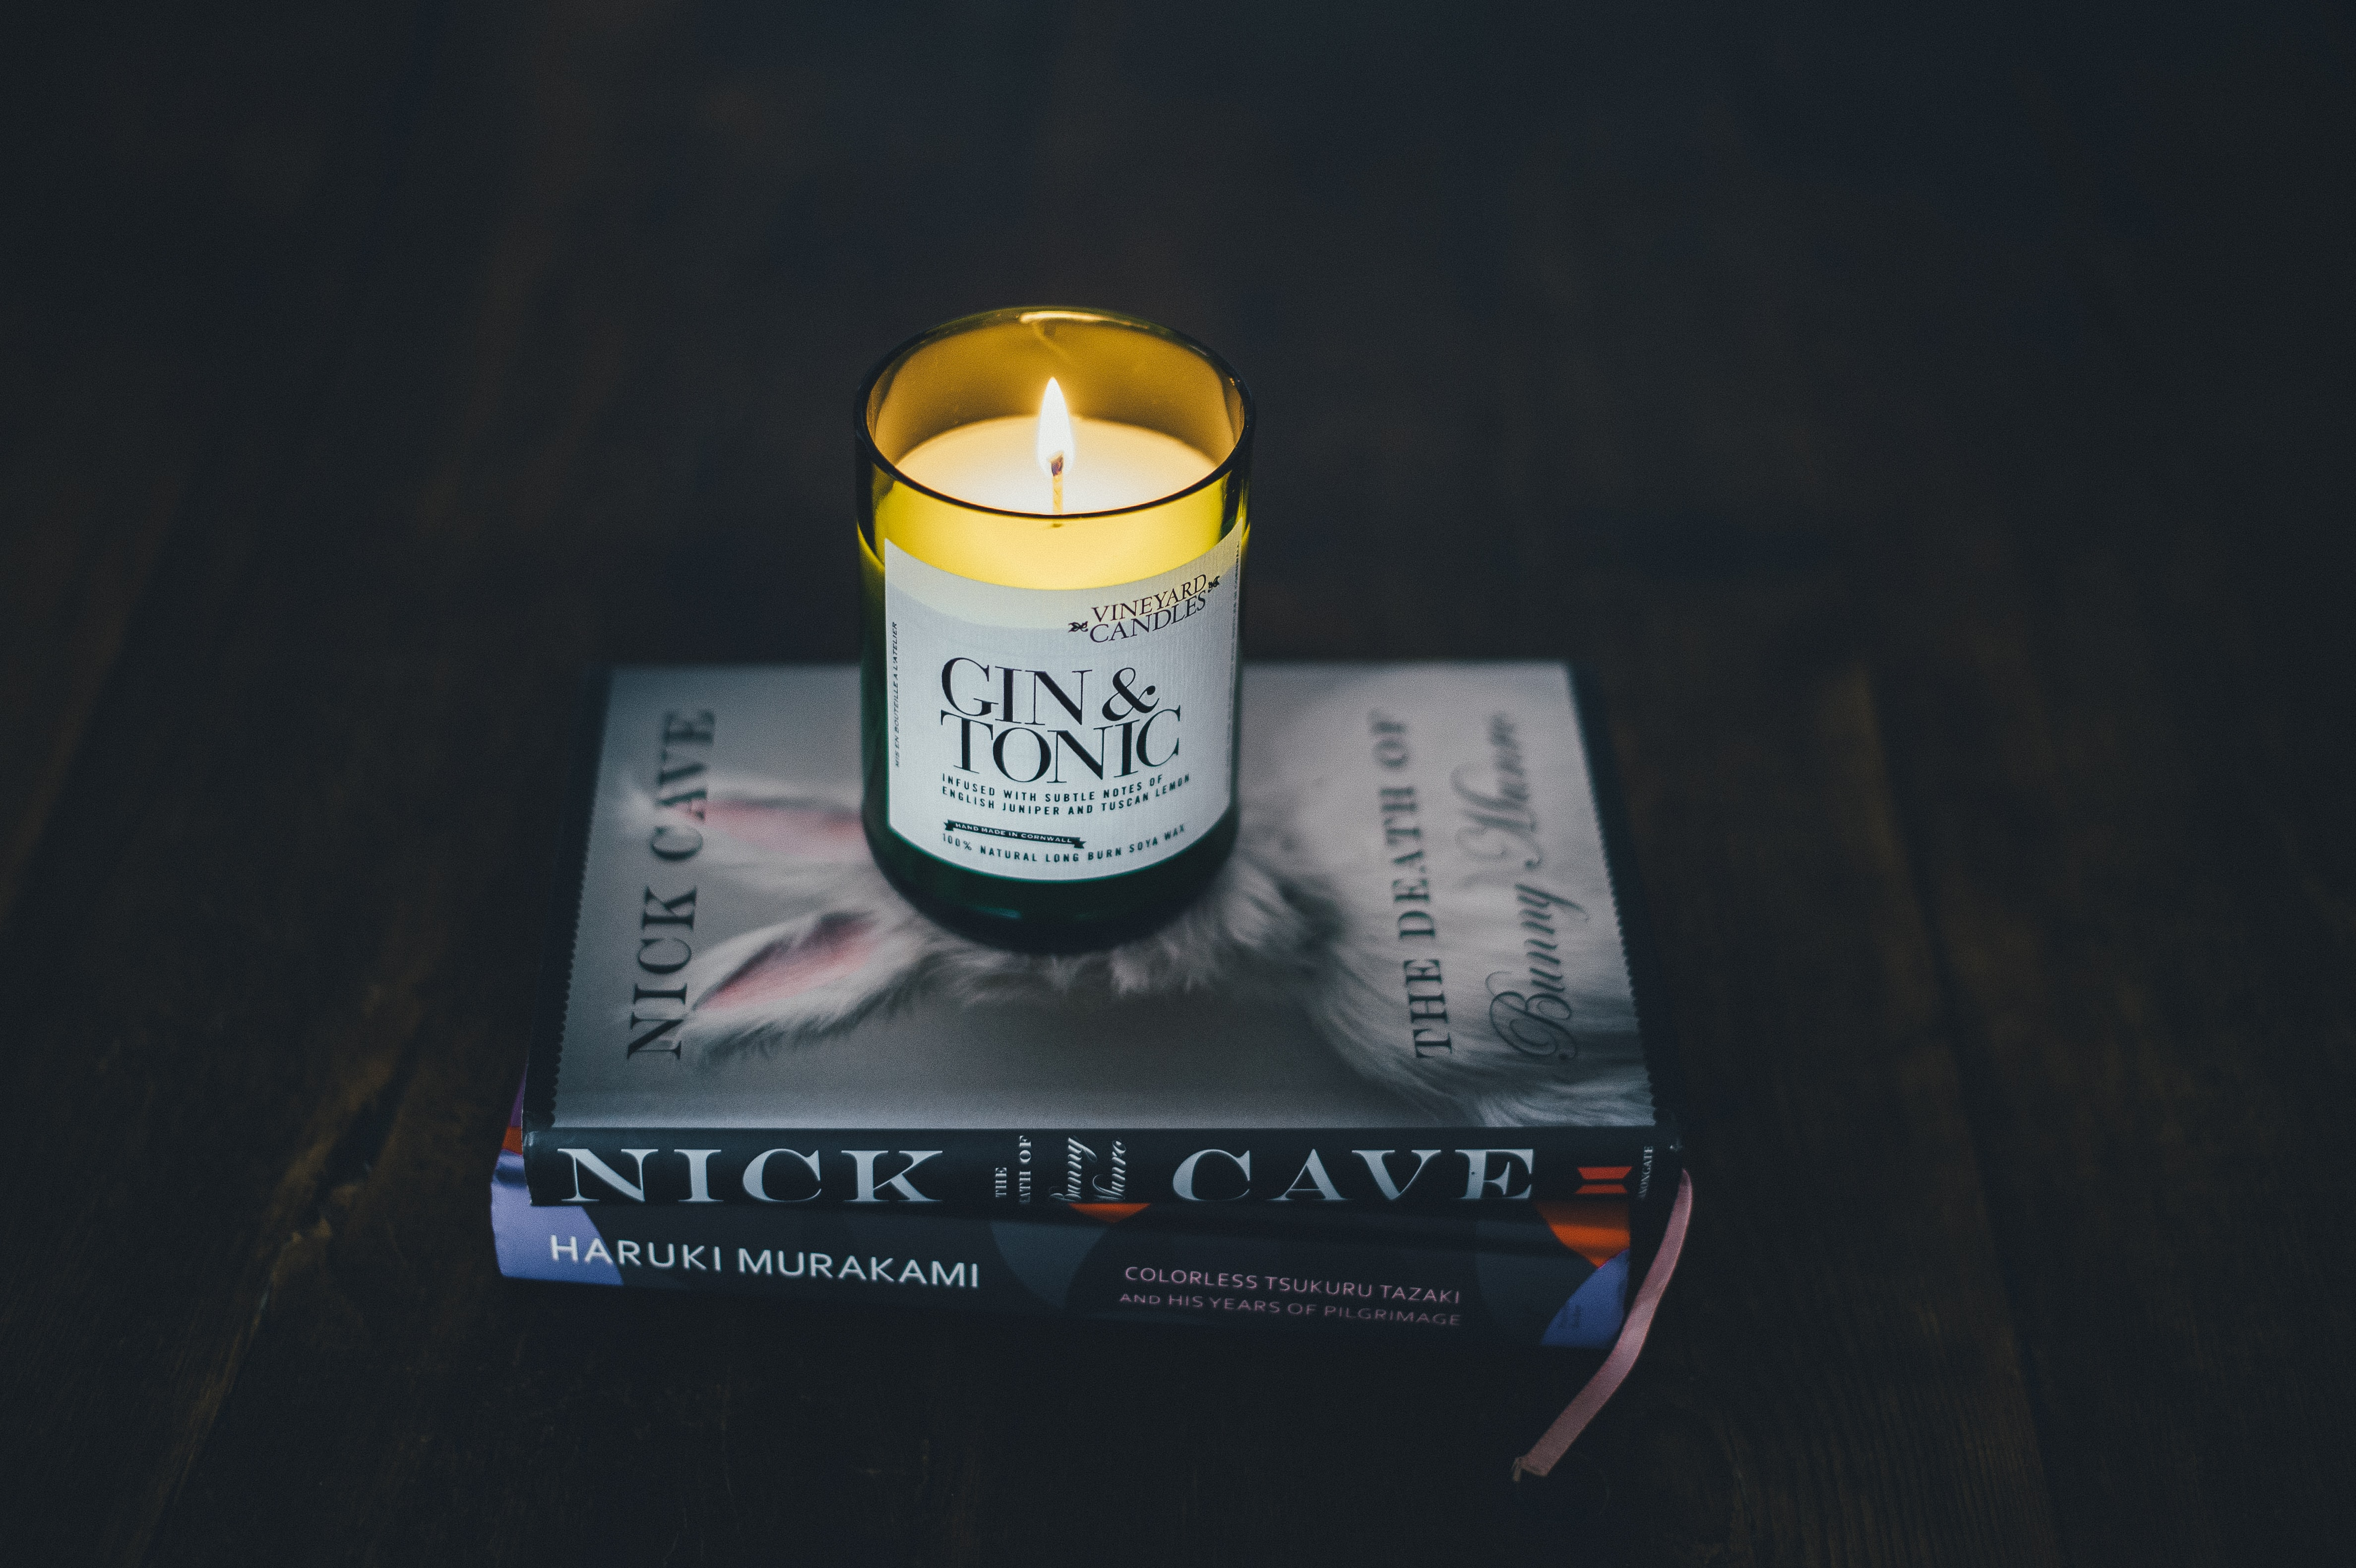 Gin & Tonic candle on Nick in the Cave book